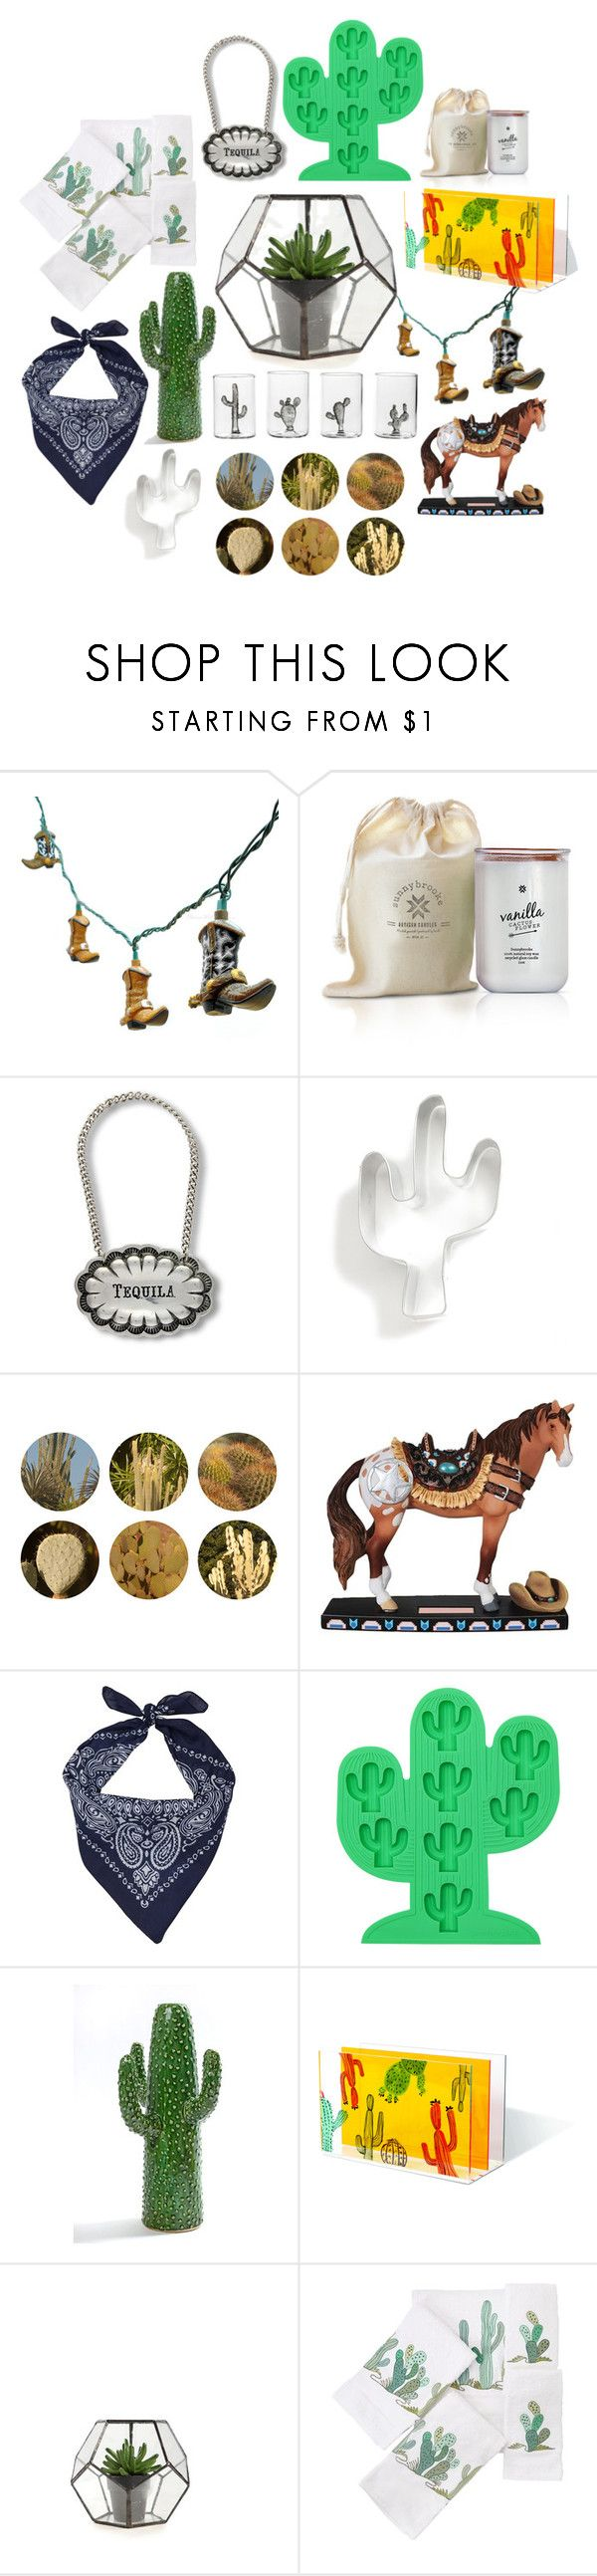 """Wild Westmas"" by brandnewjen ❤ liked on Polyvore featuring interior, interiors, interior design, home, home decor, interior decorating, Vagabond House, Ann Clark, Ella Doran and Westland Giftware"